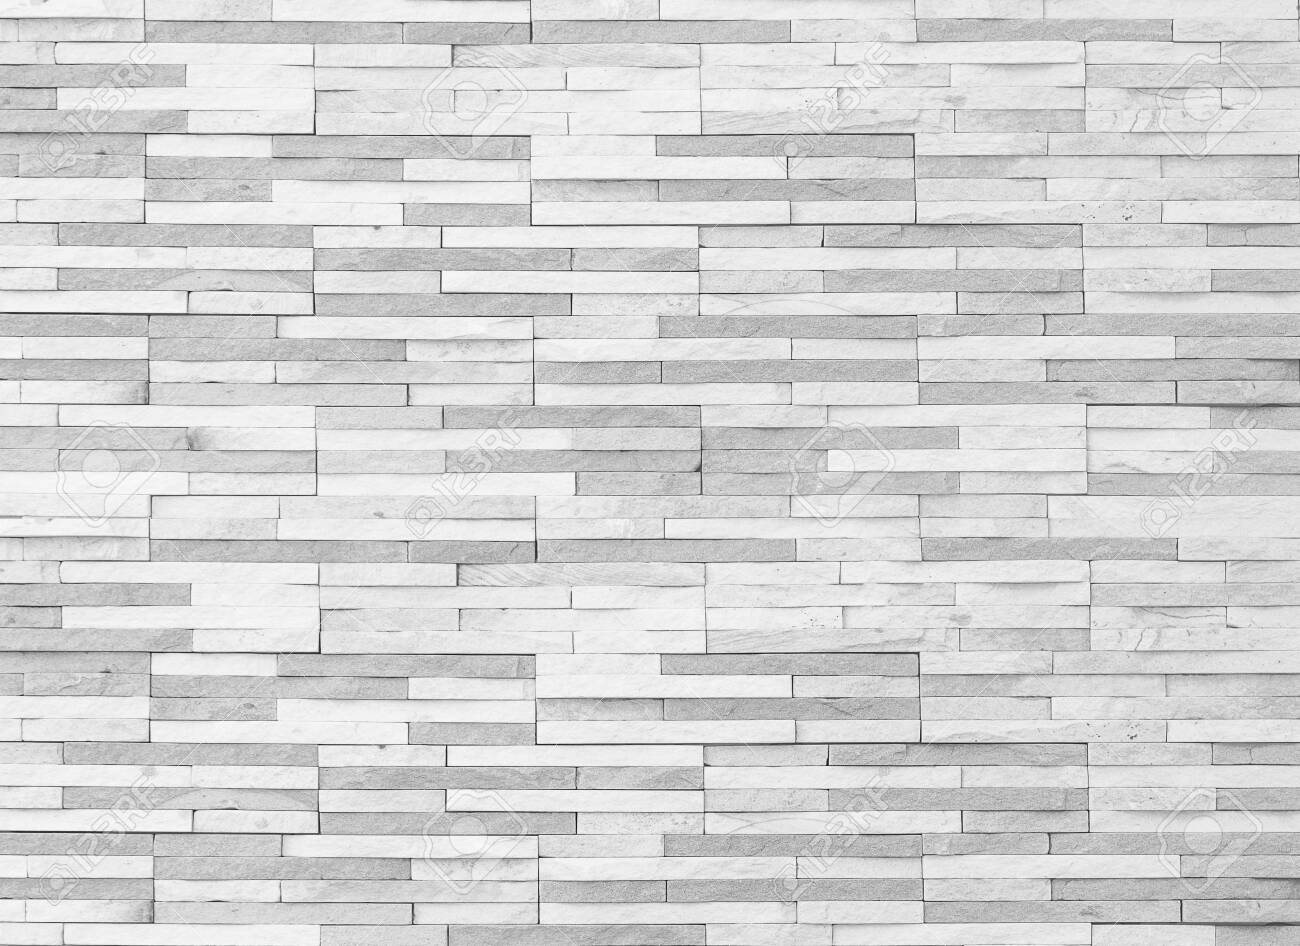 Brick tile wall texture pattern background in white grey color - 135266367